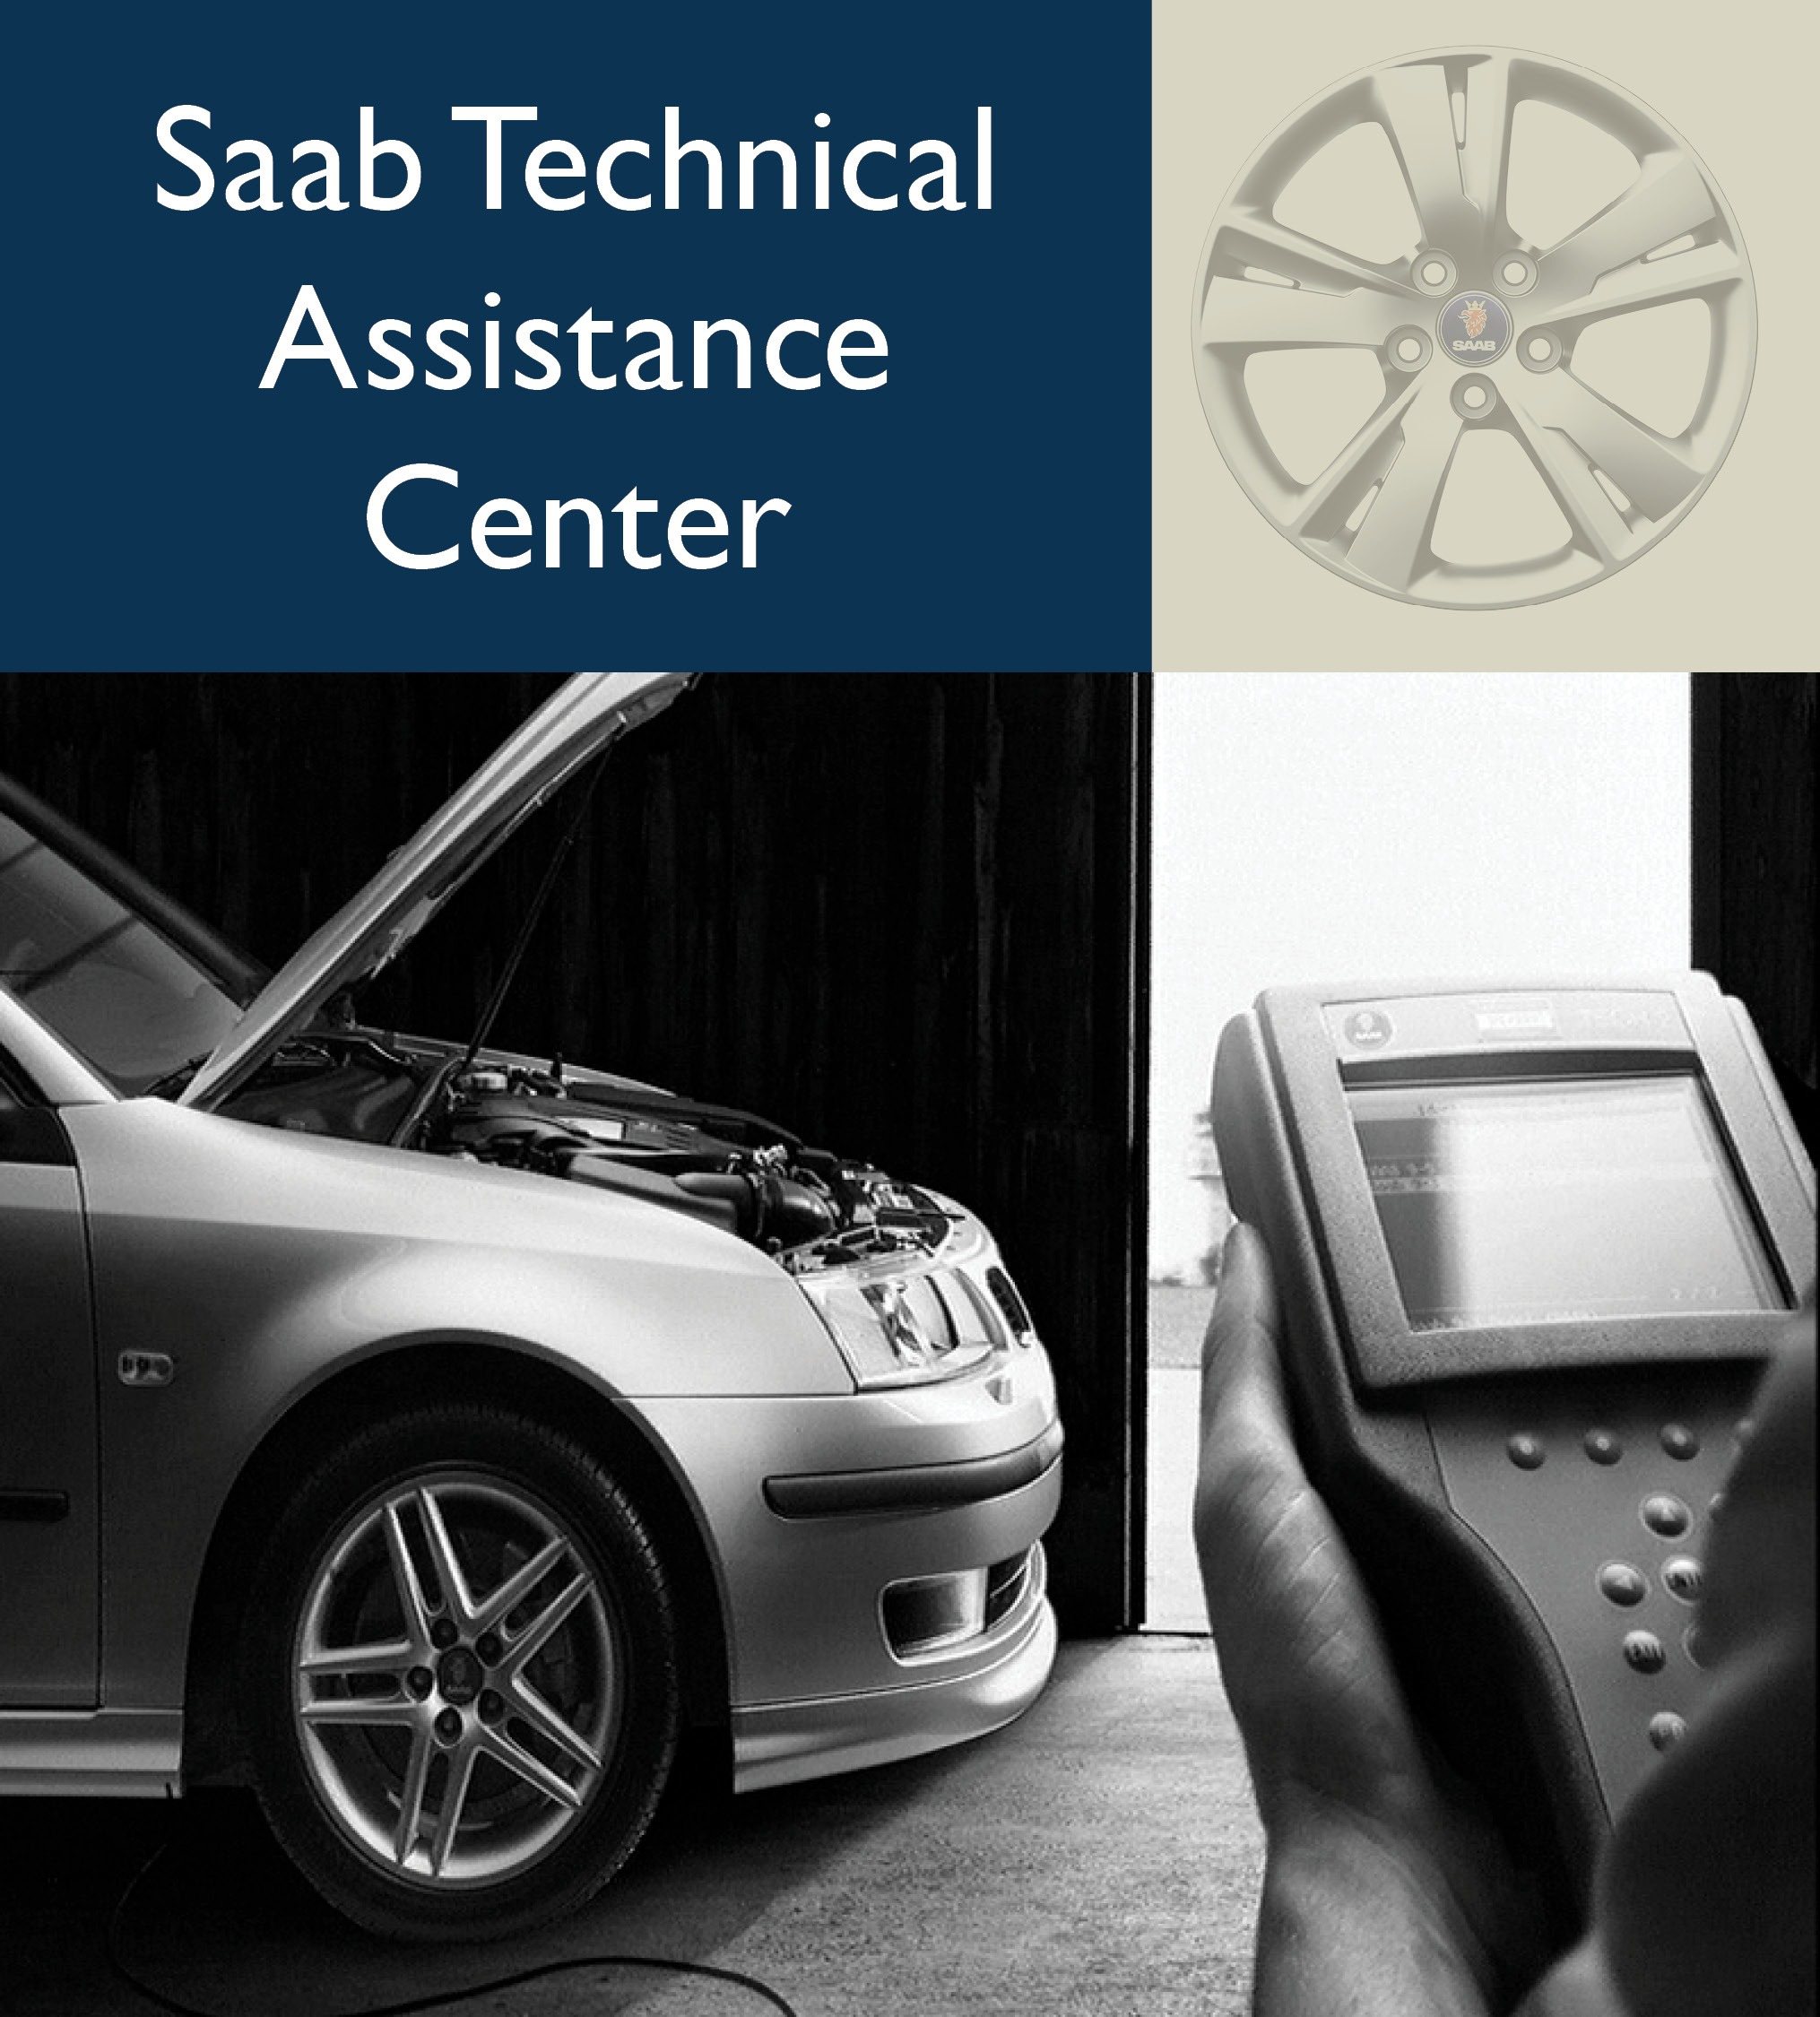 Saab Technical Assistance Center